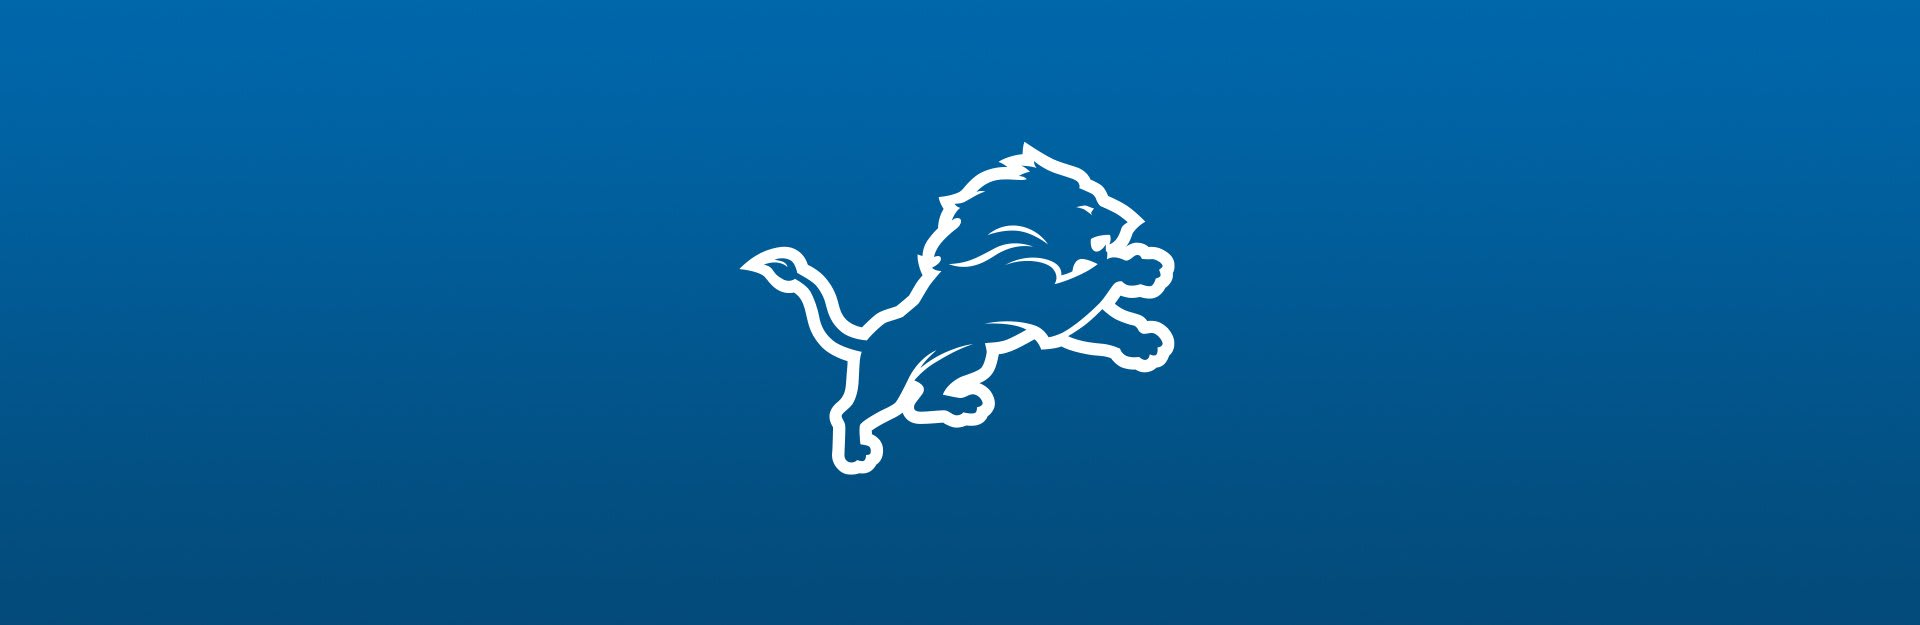 Detroit Lions logo on blue background